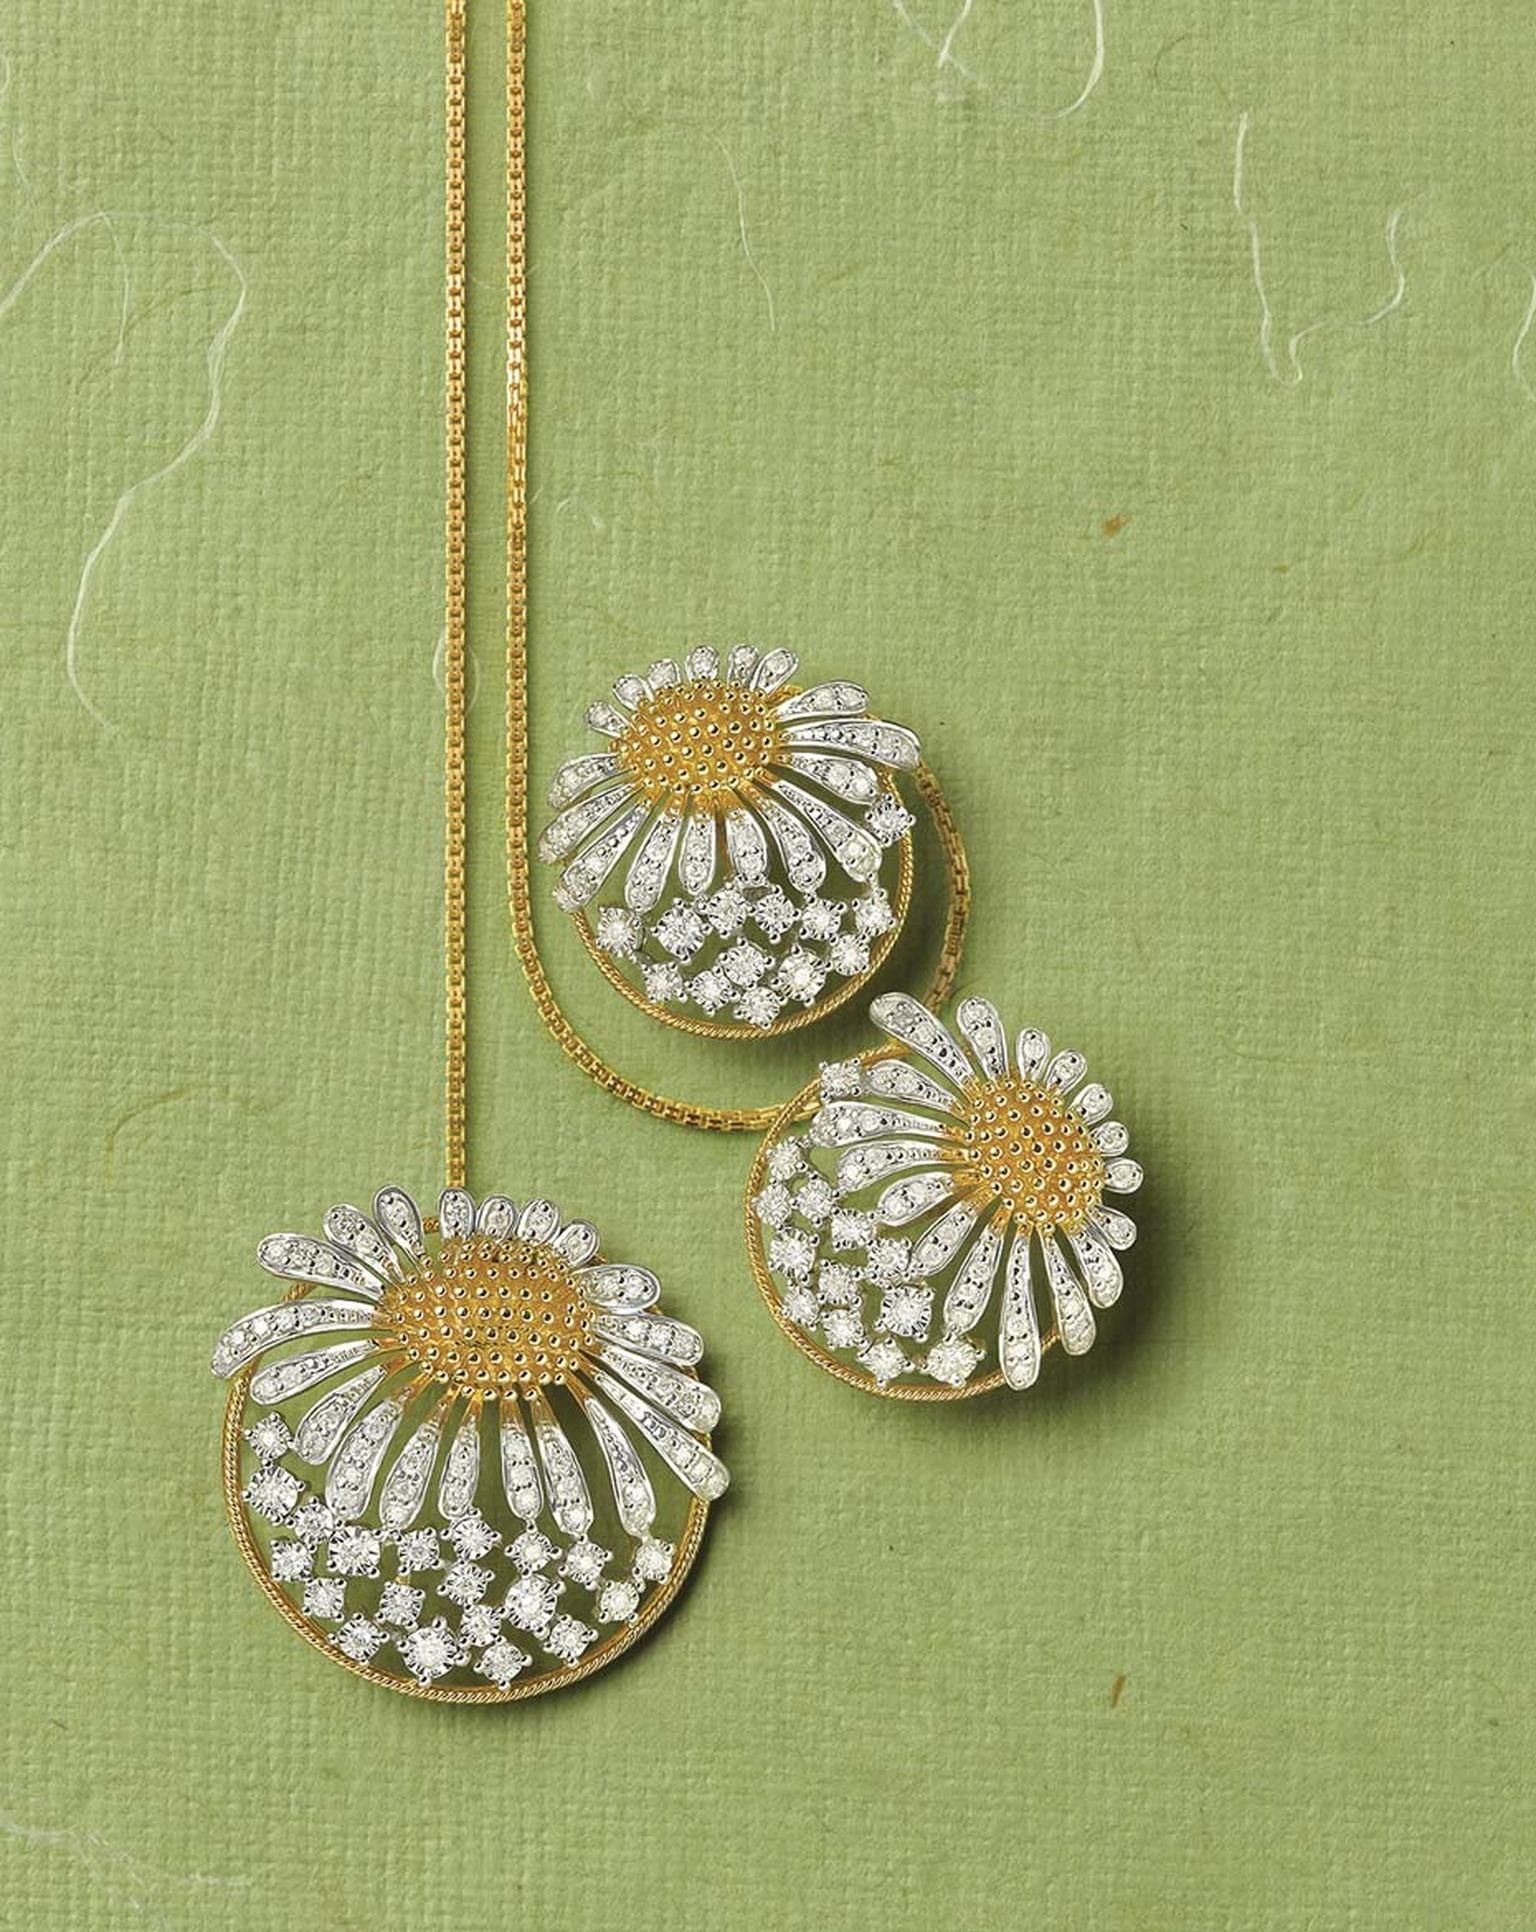 Tanishq launches two vibrant new jewellery collections aimed firmly